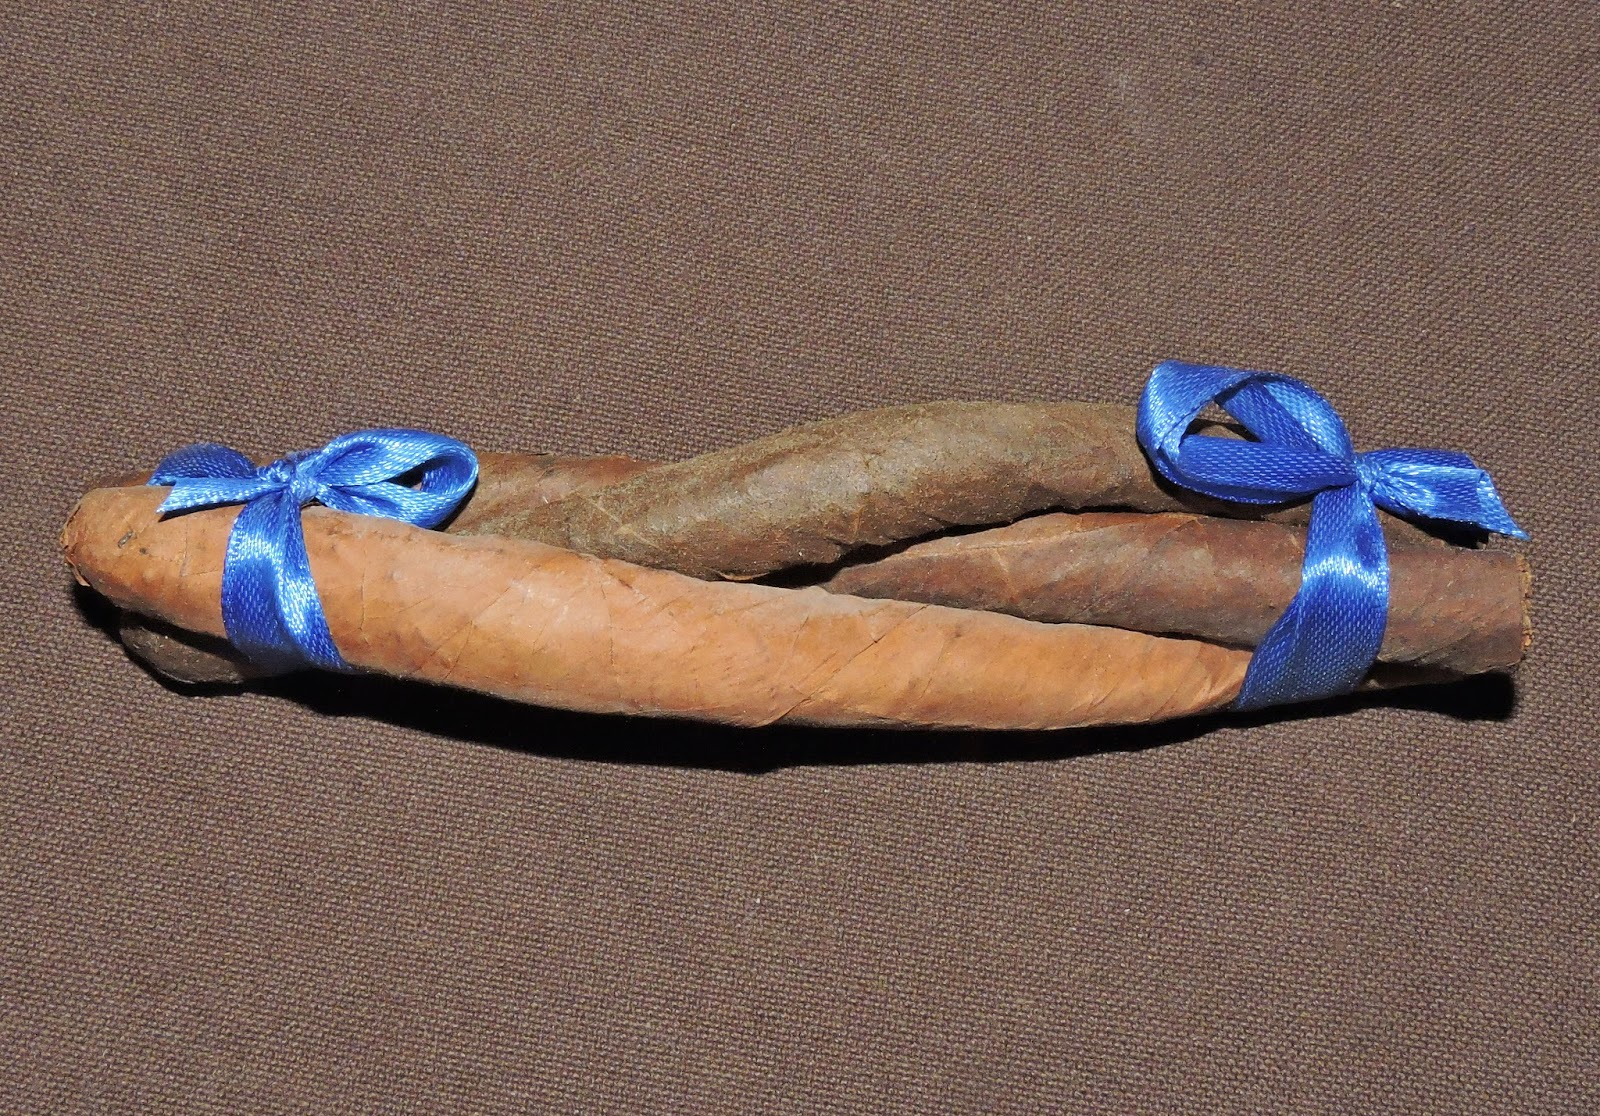 Cigar Review: Viva Republica Edición Limitada Culebra